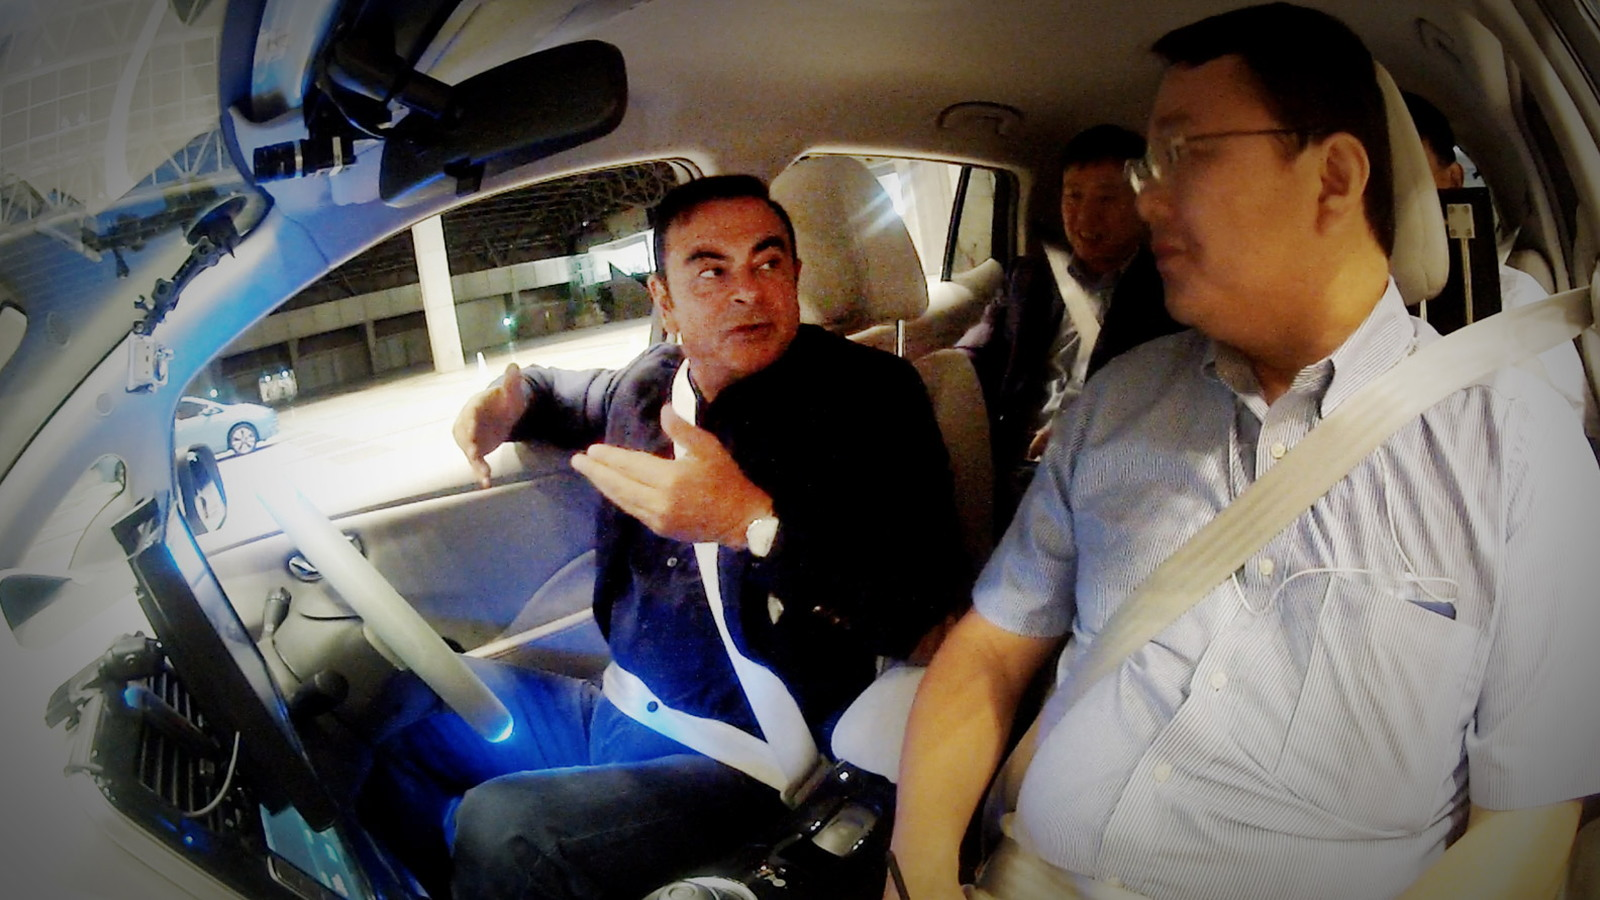 Renault Nissan CEO Carlos Ghosn in a Nissan Leaf autonomous car prototype